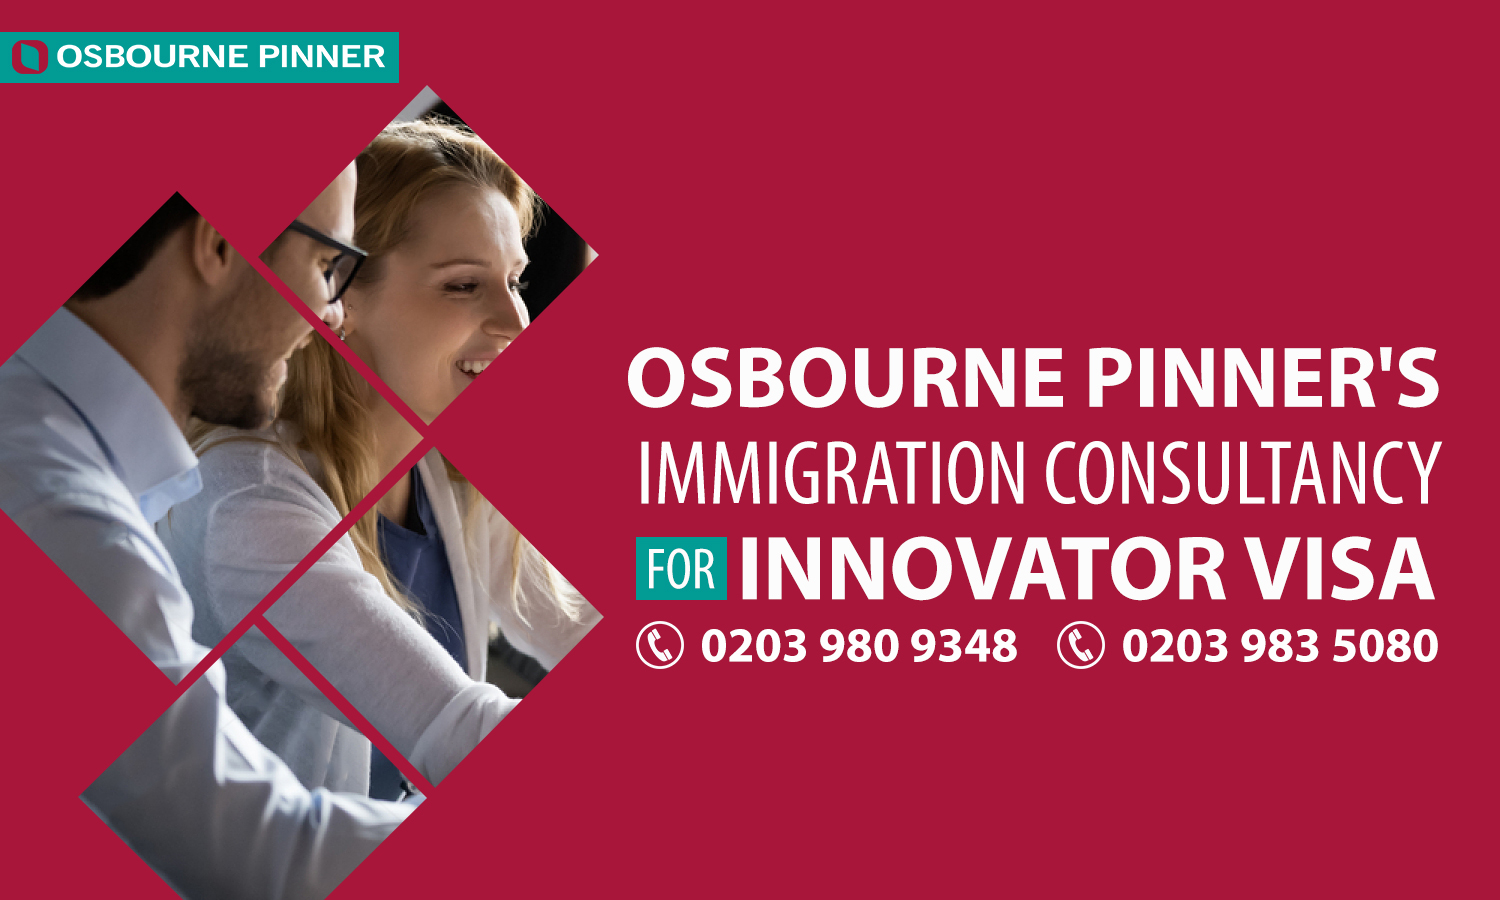 Osbourne Pinner Helps Another Innovator Visa Aspirant